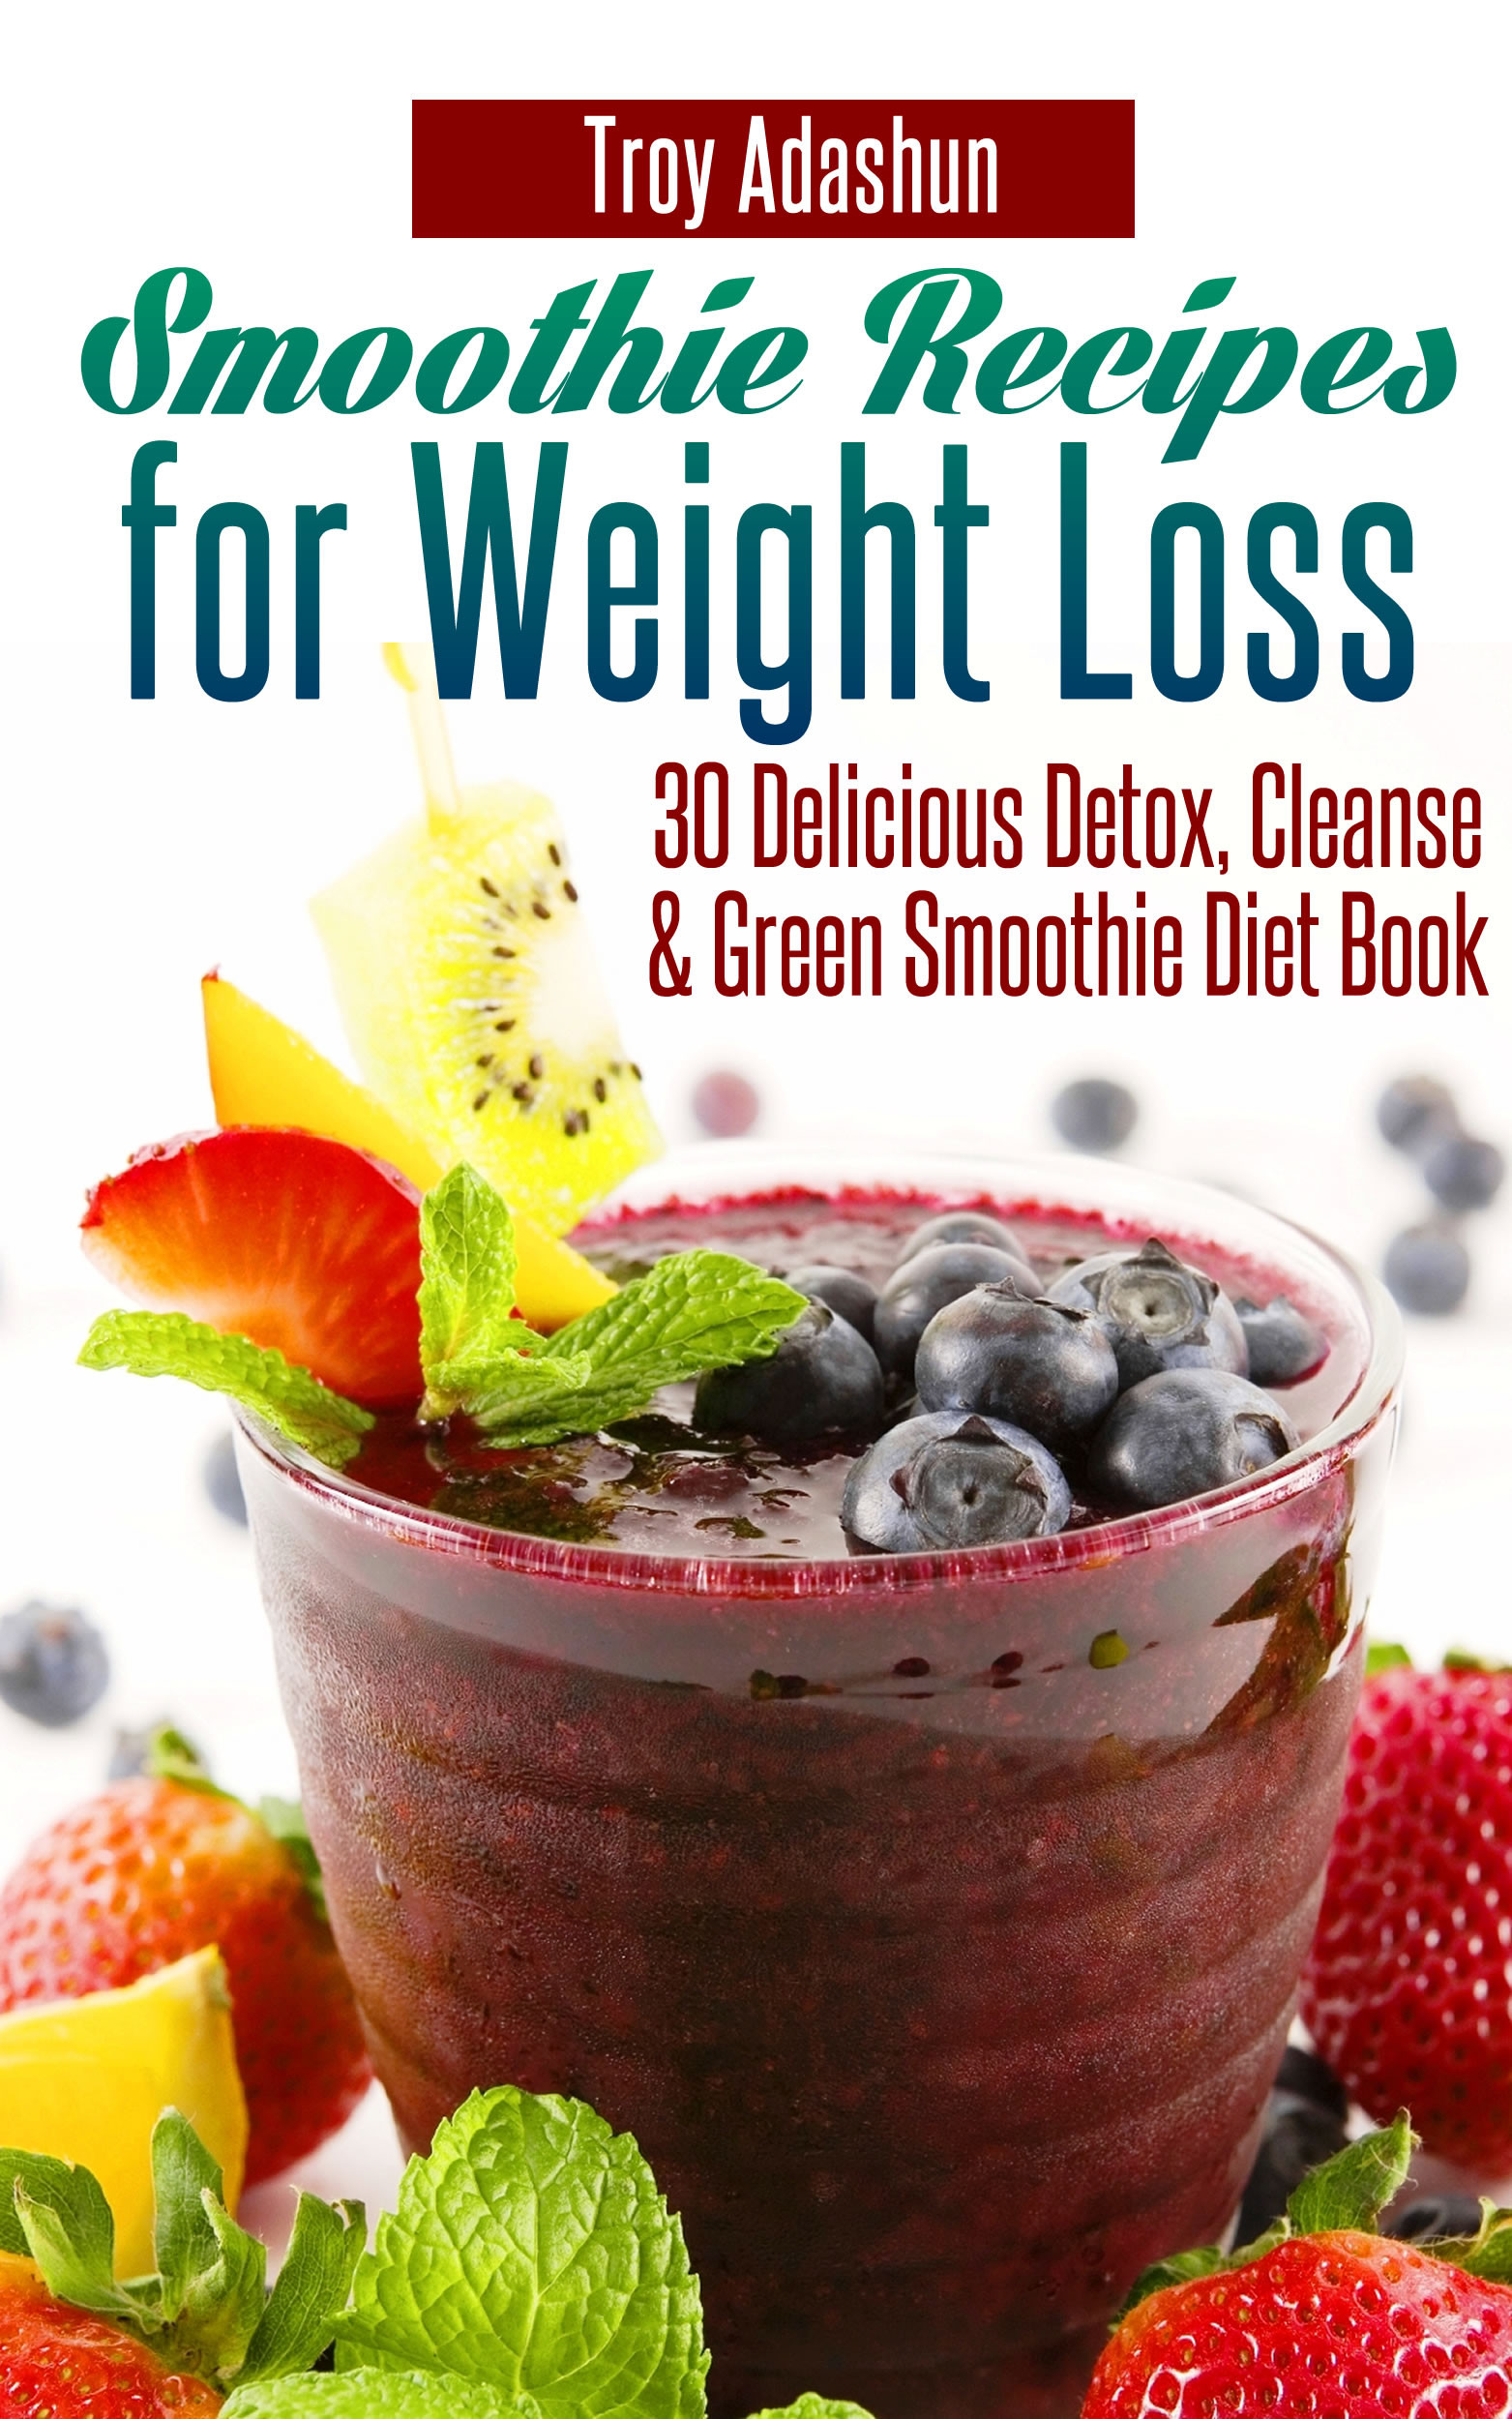 Diet Smoothie Recipes  Smashwords – Smoothie Recipes for Weight Loss 30